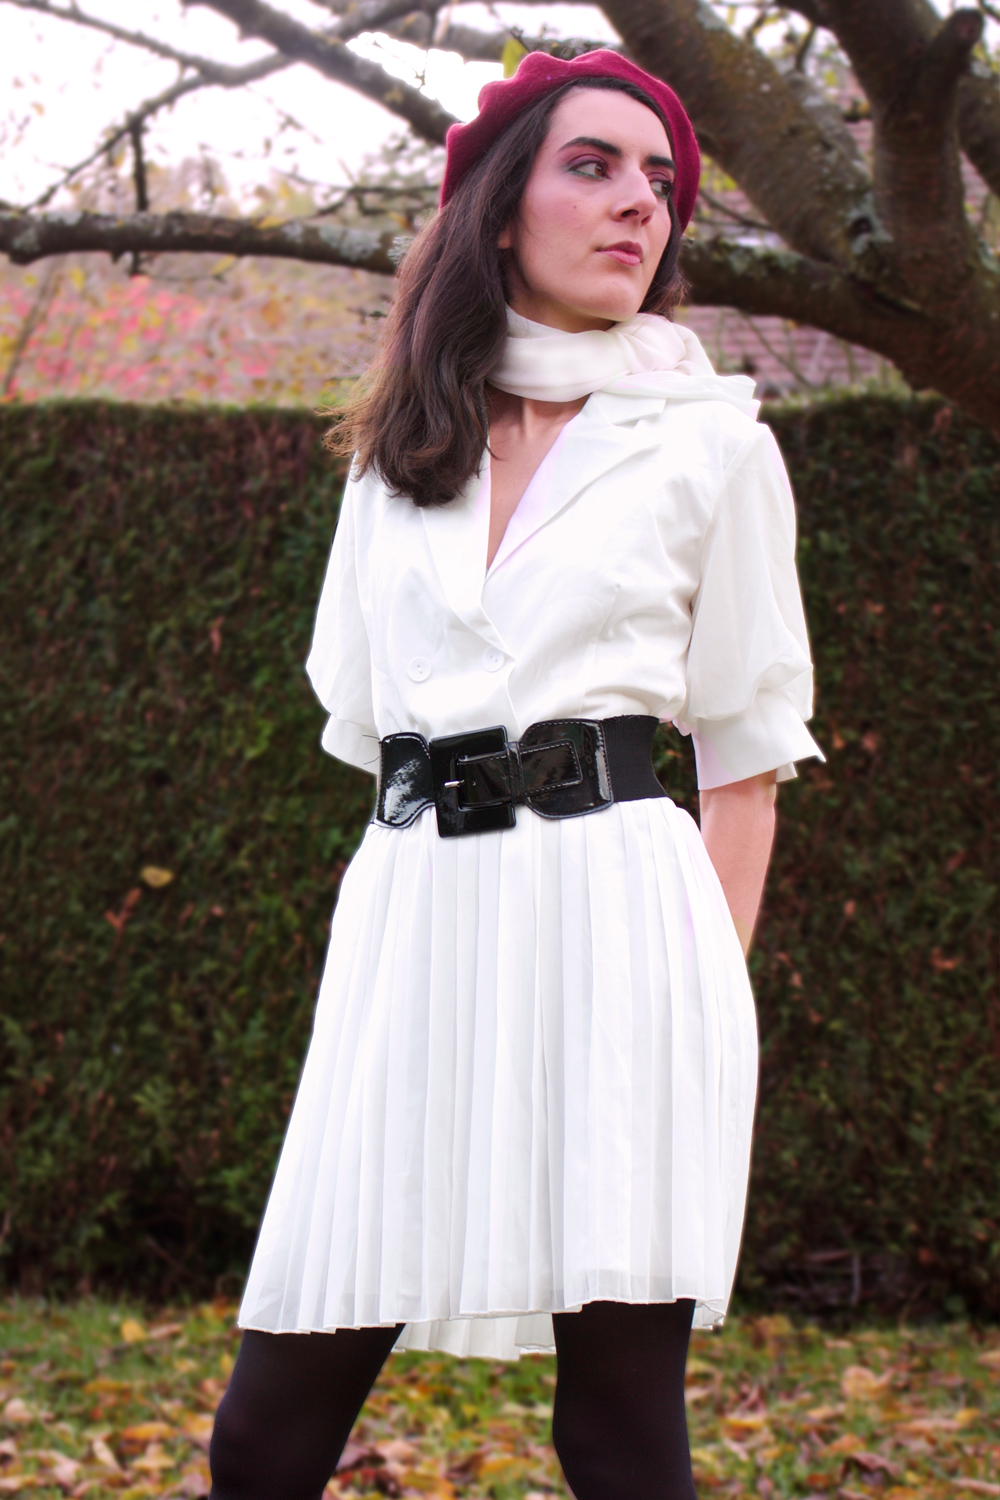 fashion retro 1960 white dress